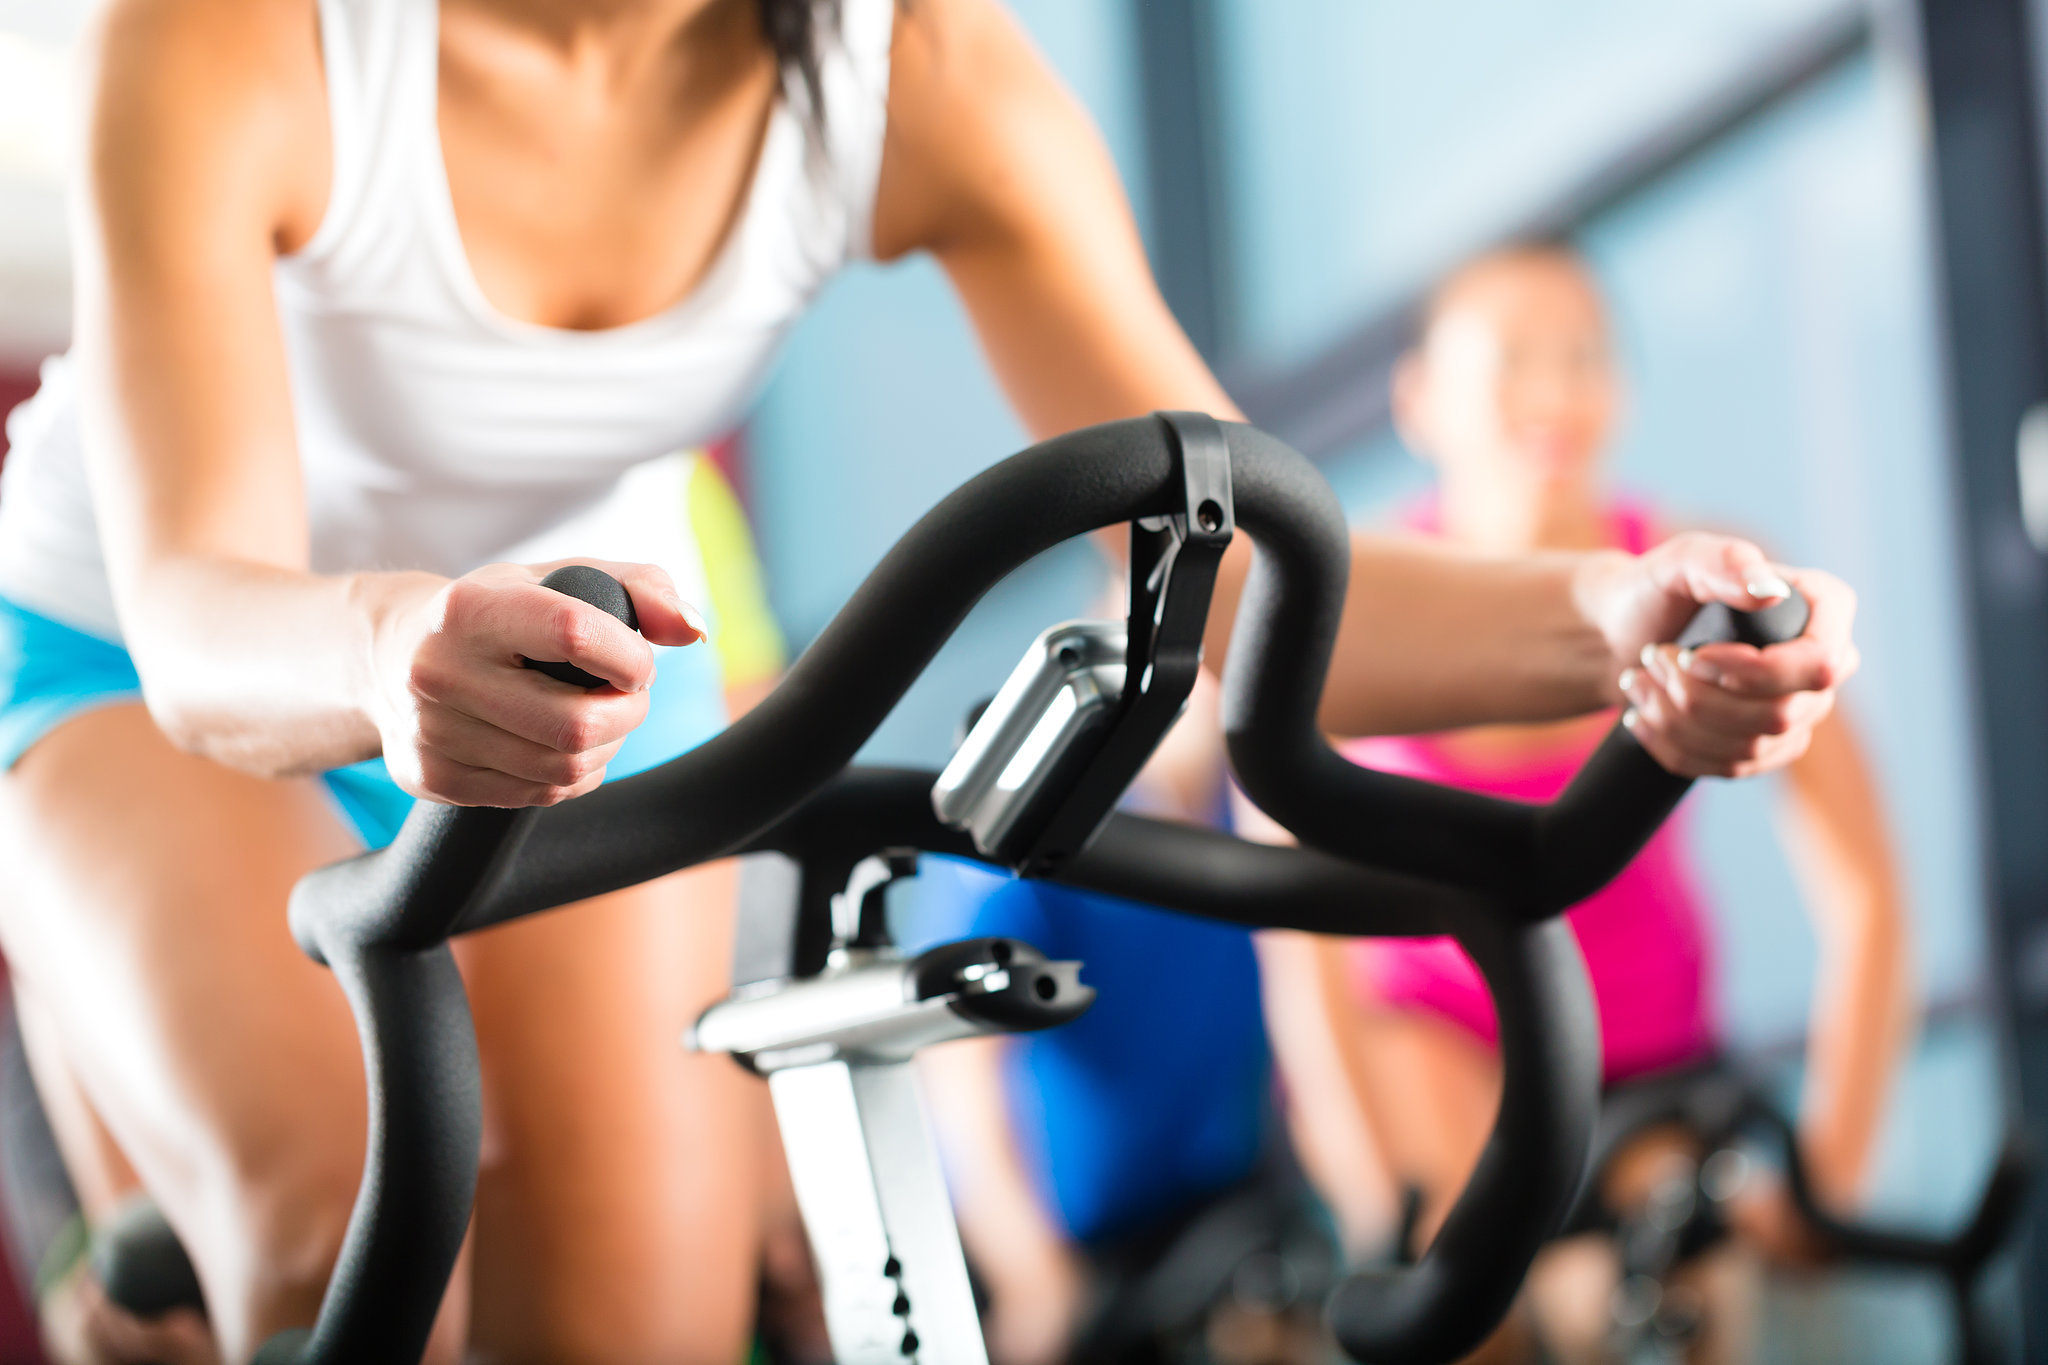 Shawn Johnson's the body department - 5 Tips for Your First Spin Class